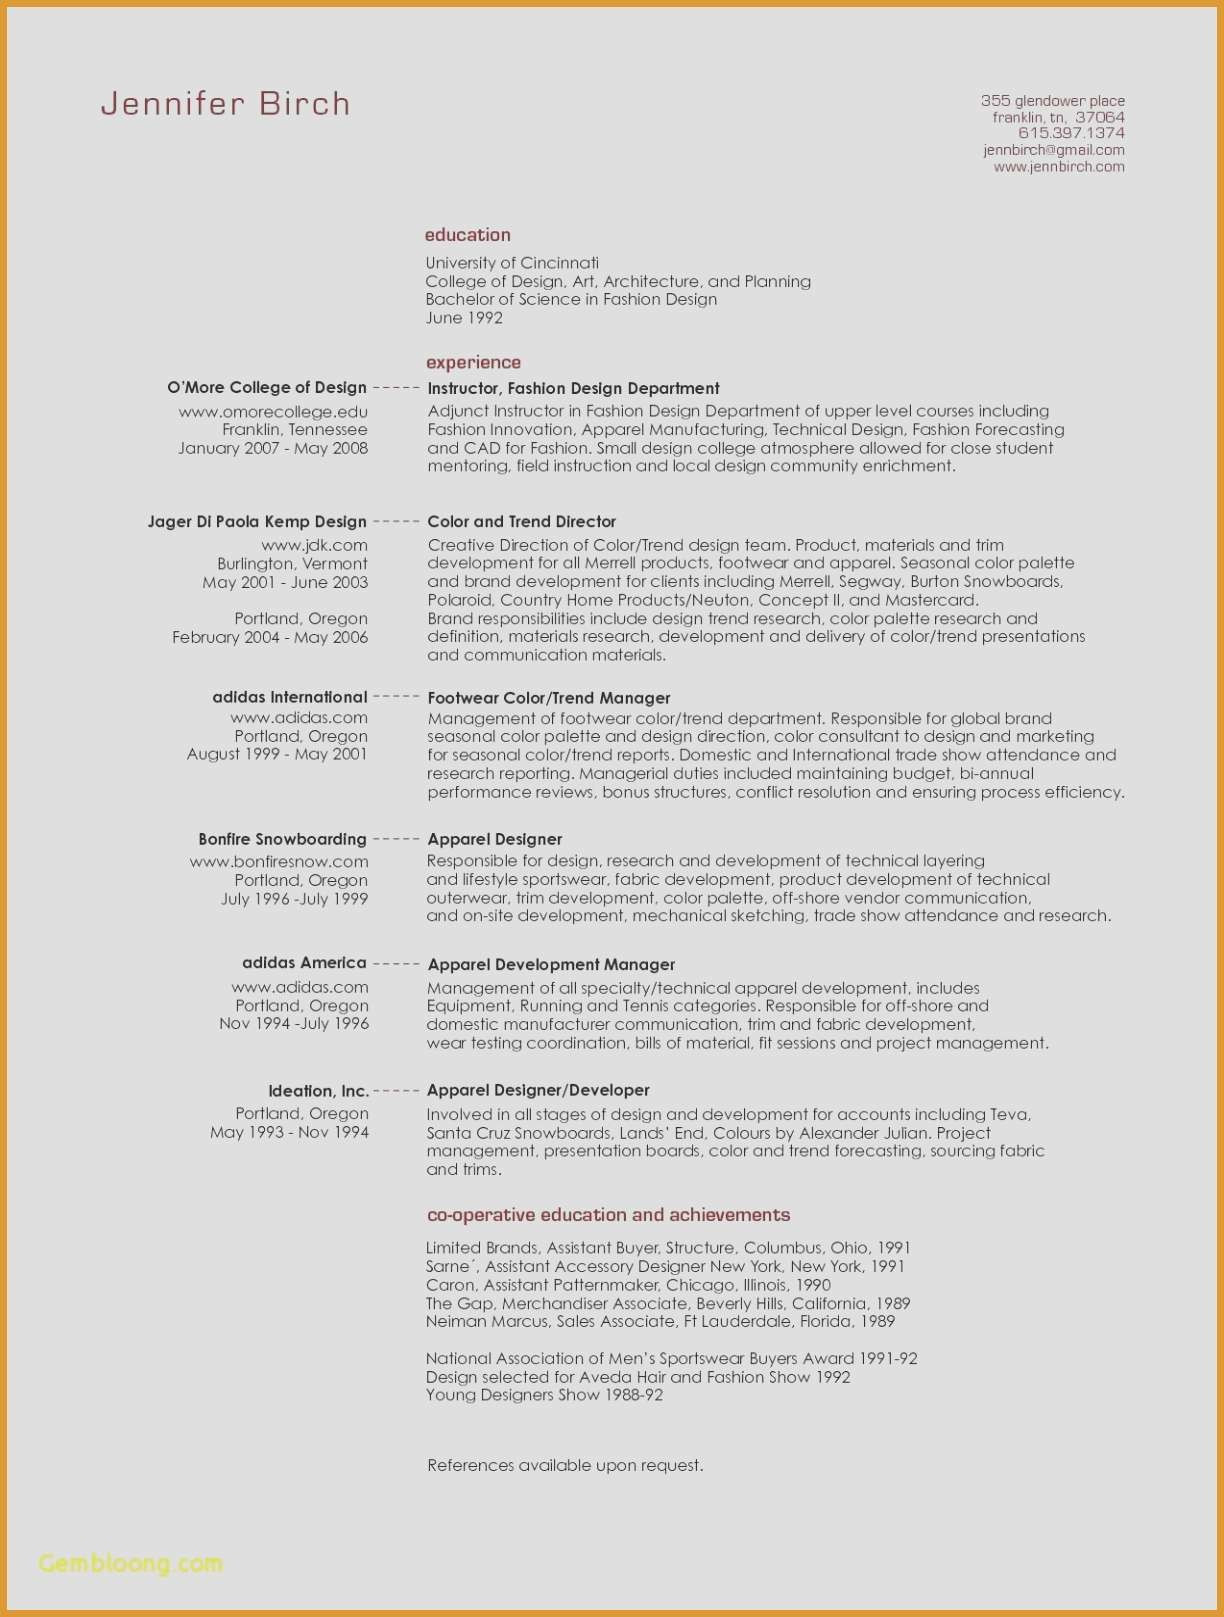 Landscaping Skills Resume - Bills Landscaping Luxury How to Write A Job Resume Beautiful General